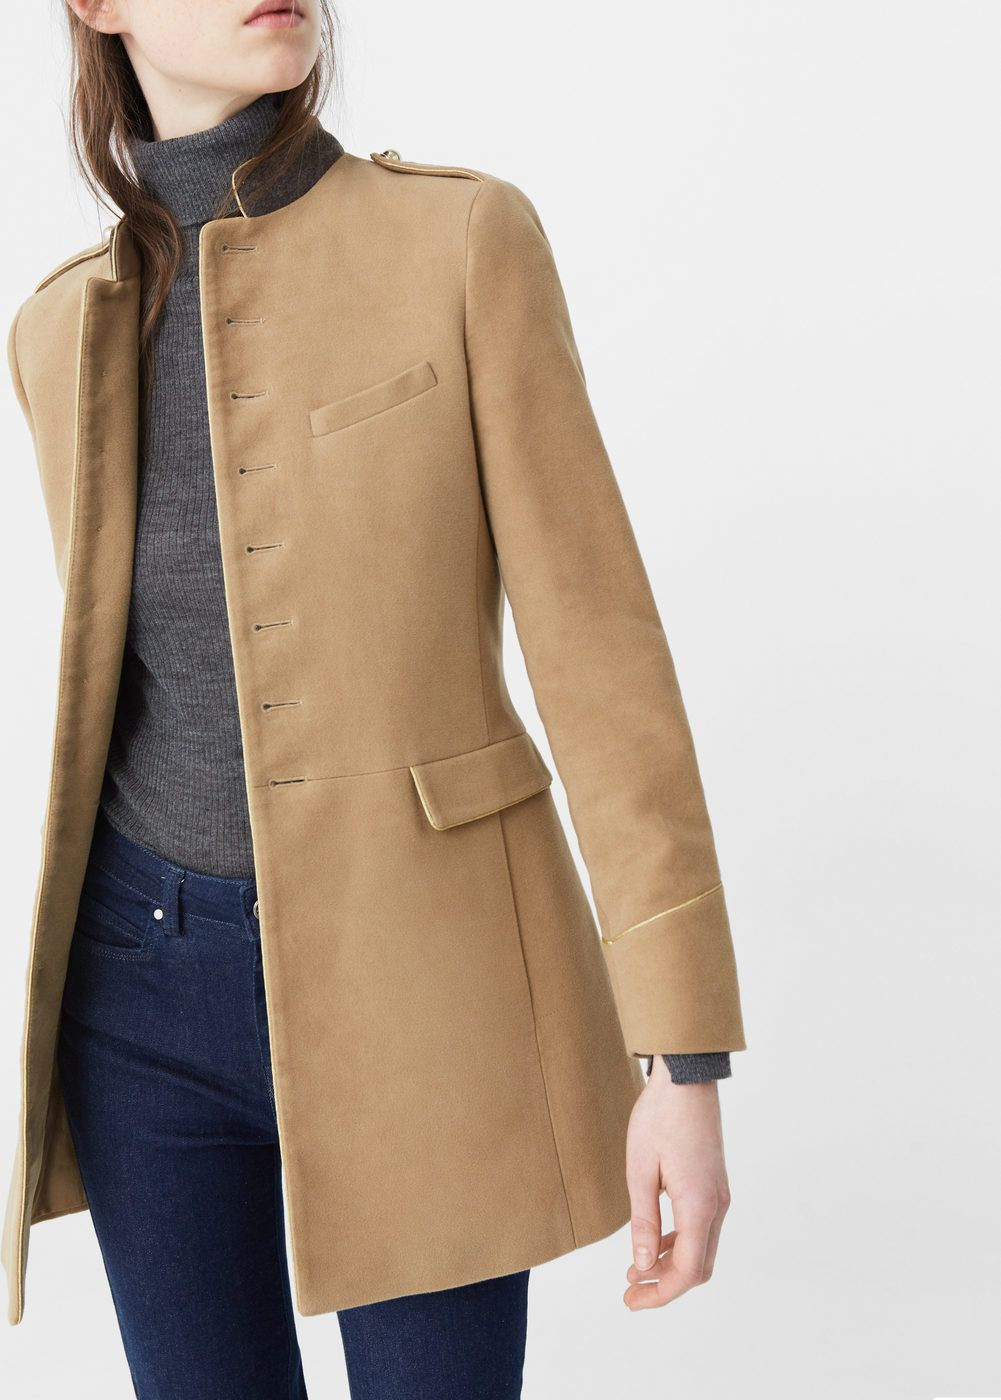 Cazadora Piel Marron Mujer Arriba Military Style Coat Women Fall Winter 16 Must Have Of 38  Arriba Cazadora Piel Marron Mujer